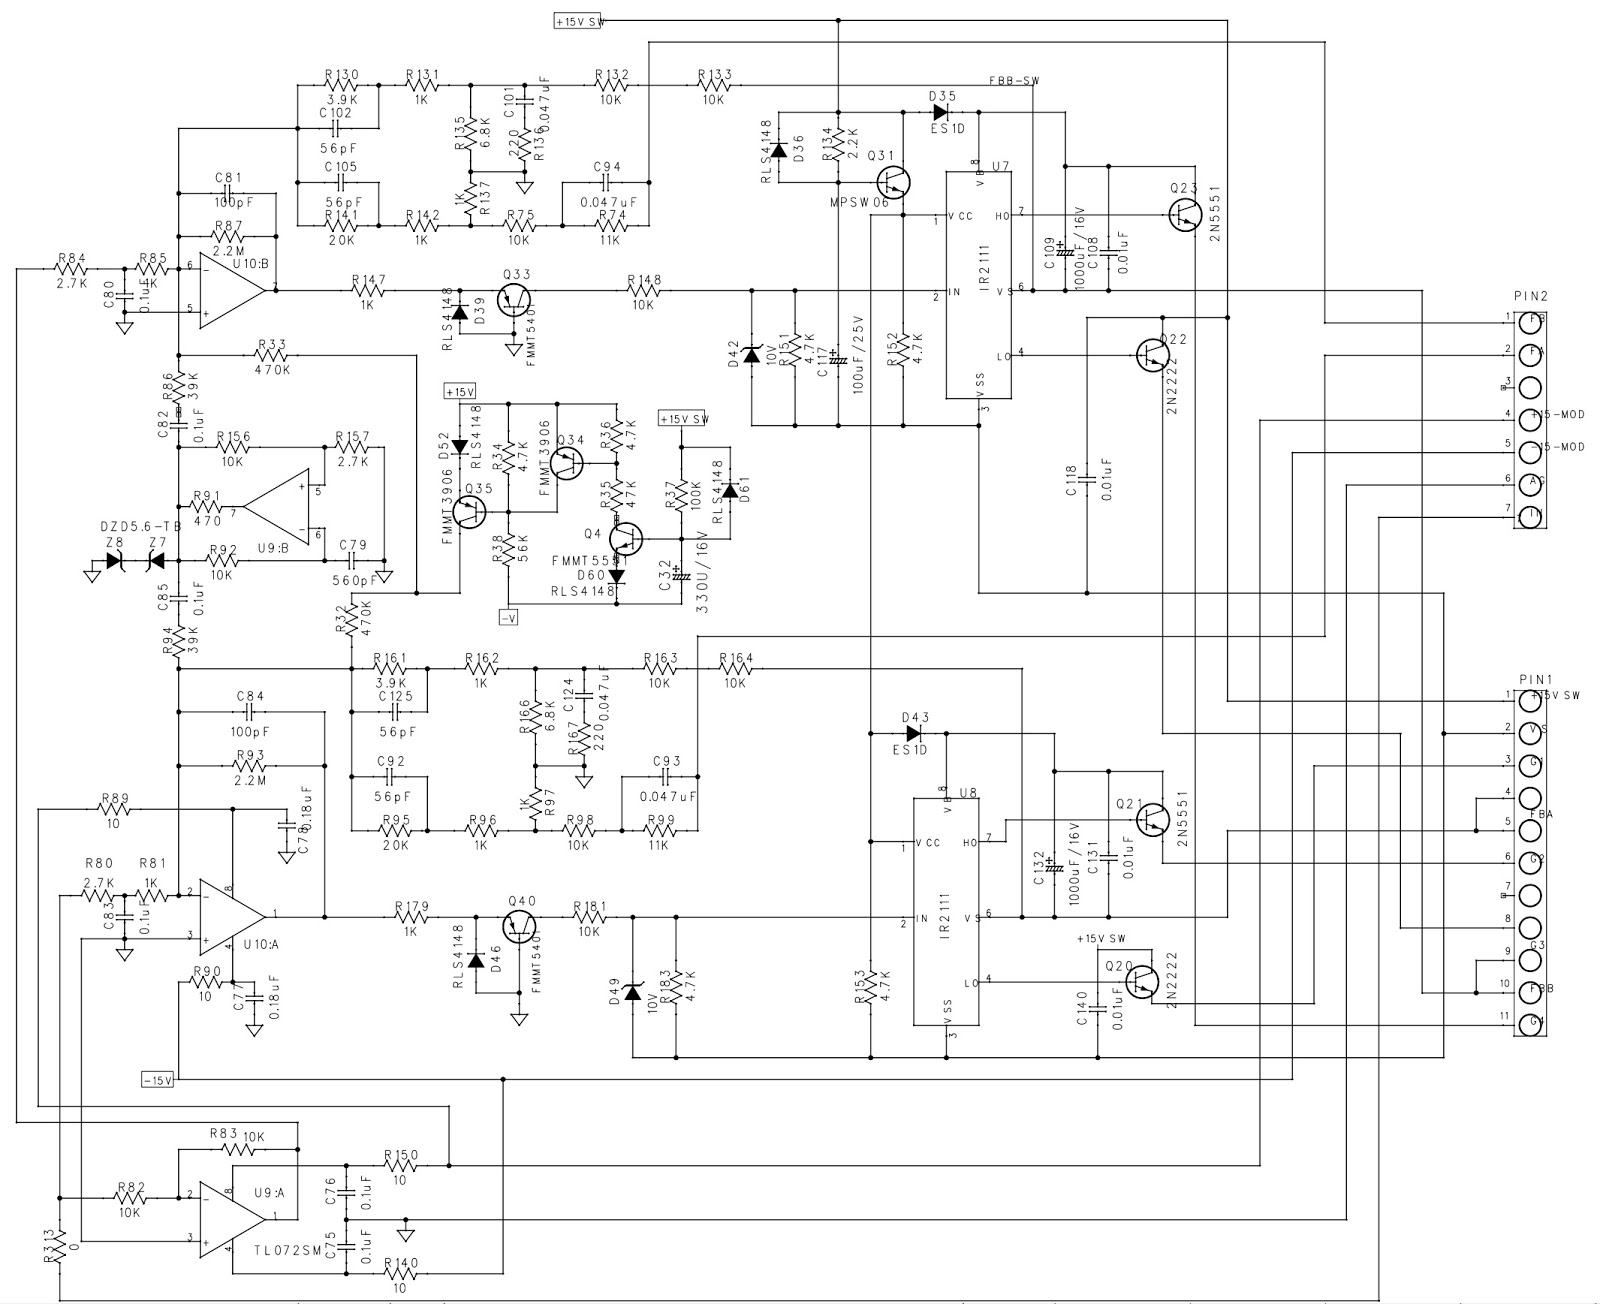 medium resolution of jbl s120pii powered subwoofer schematic studio series 400watts jbl powered subwoofer schematic diagram source jbl bp 1200